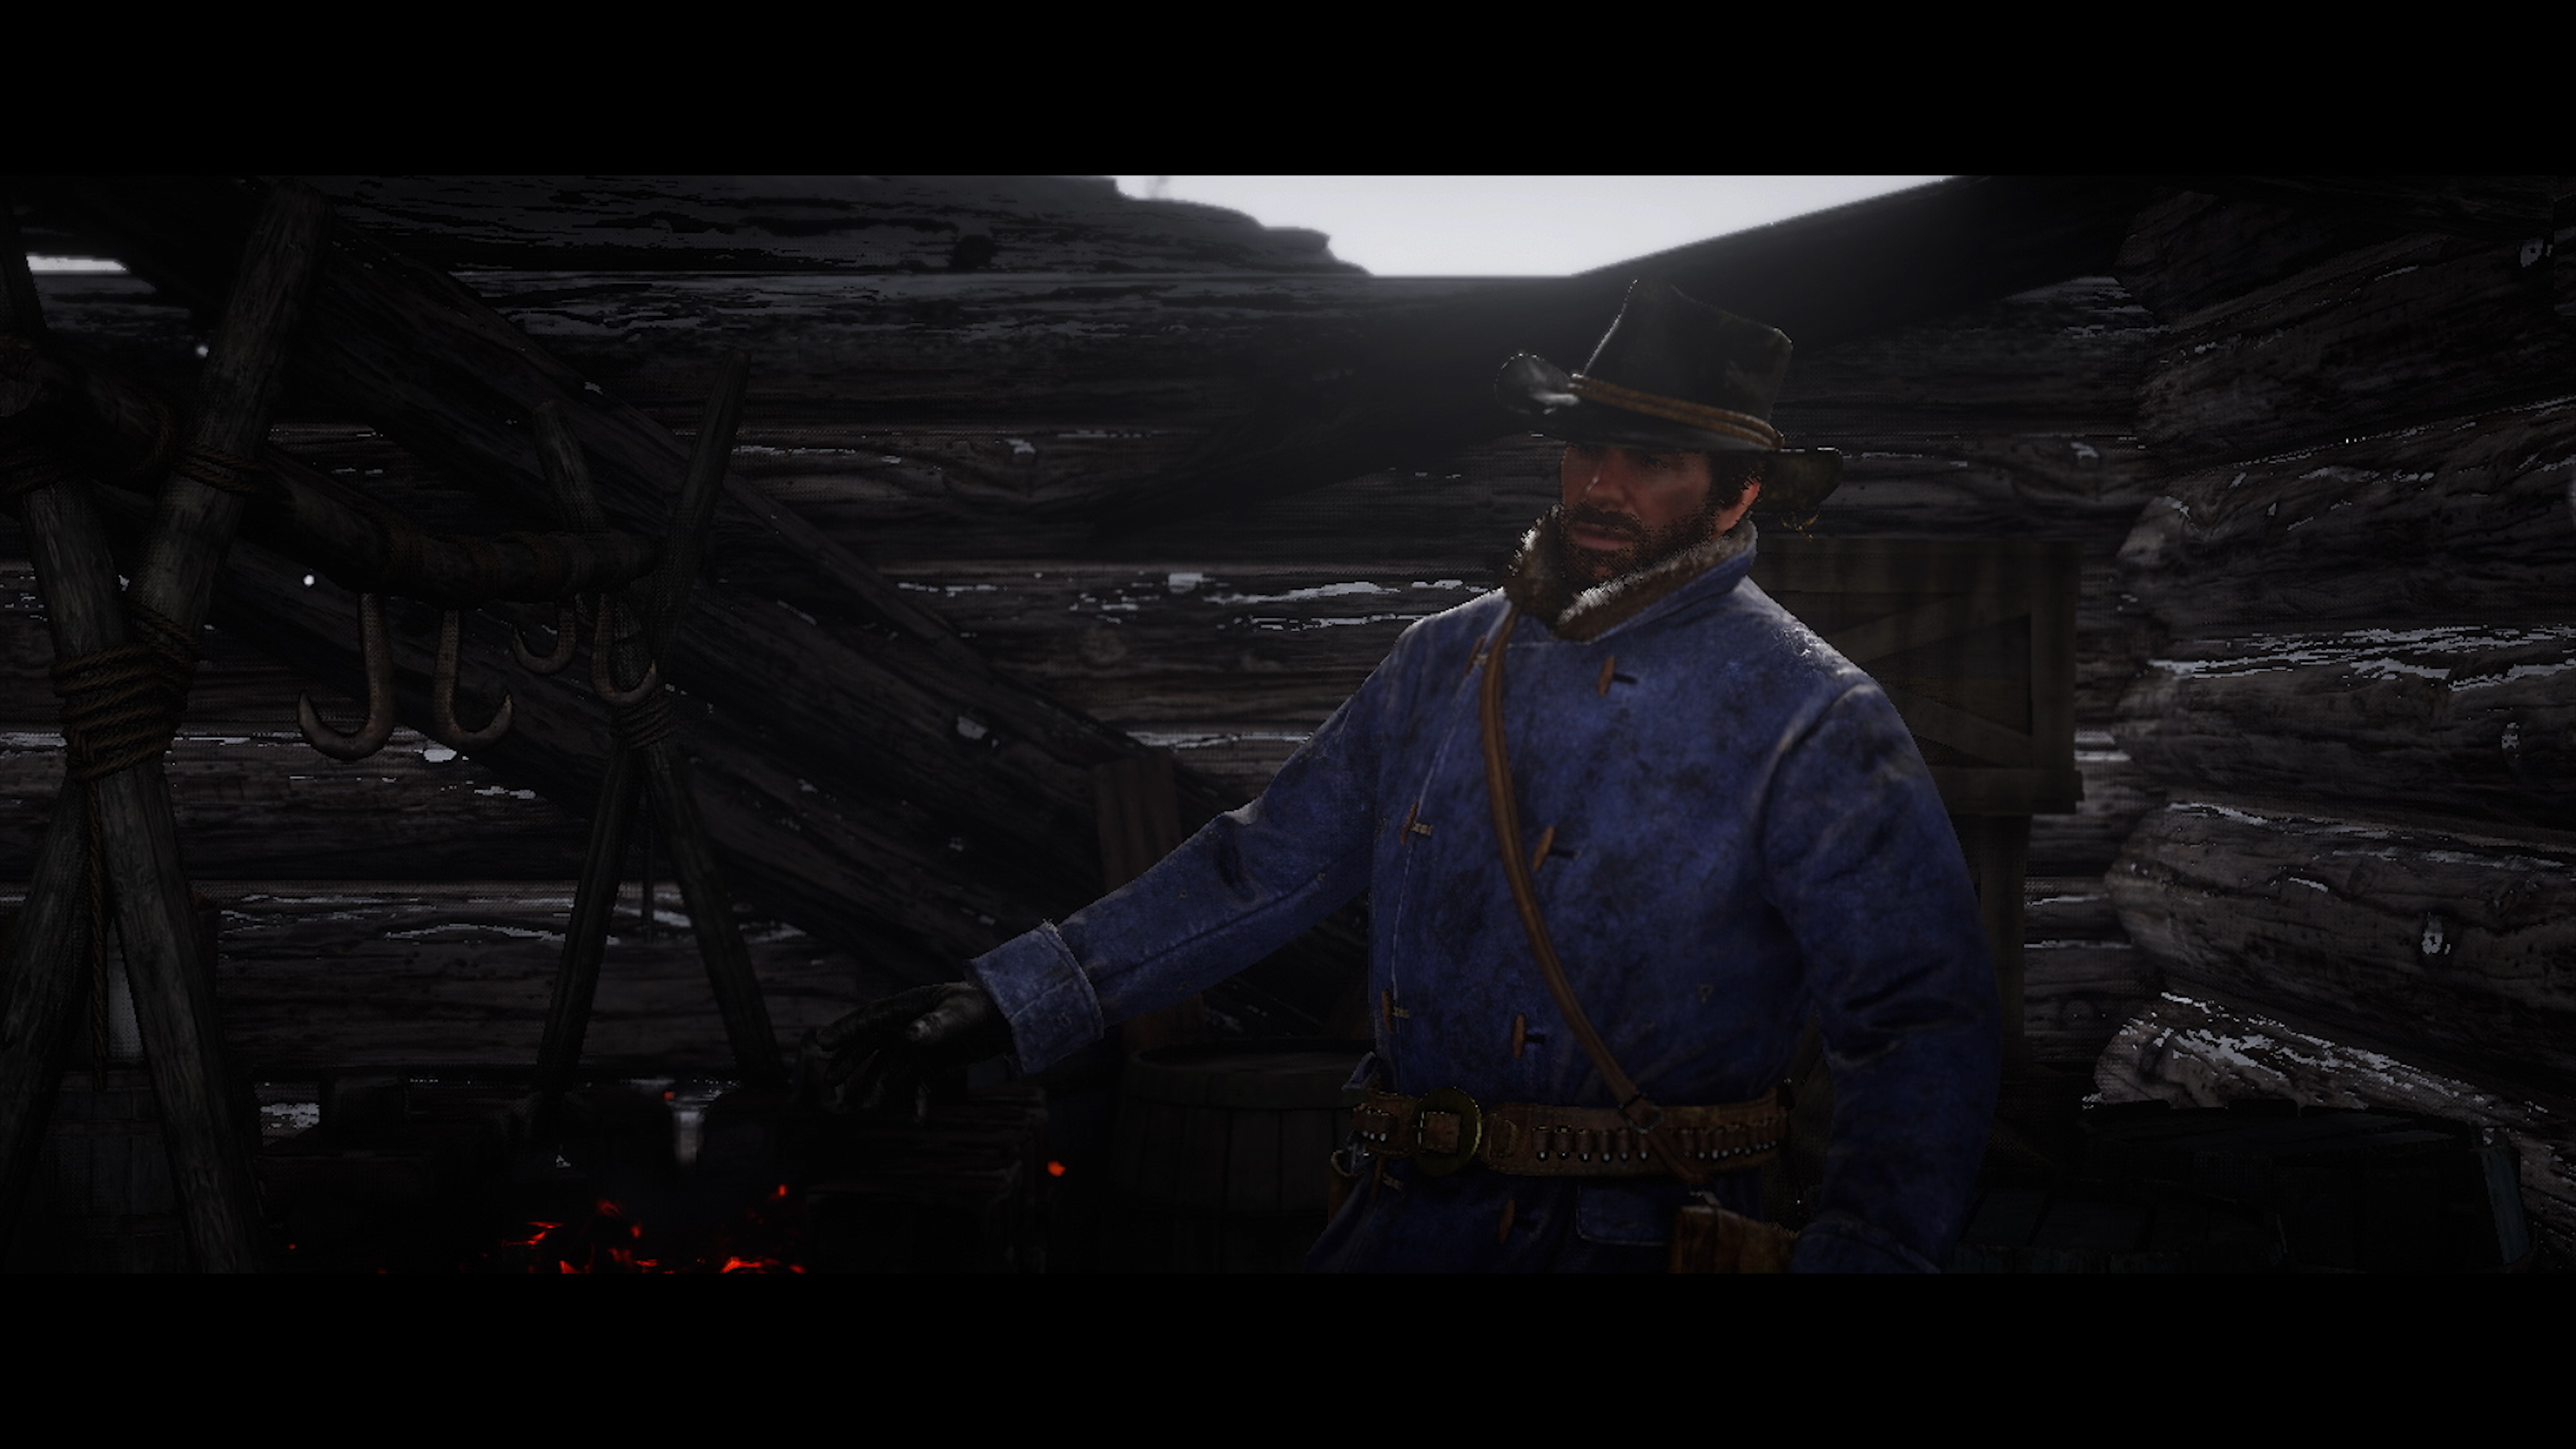 Red Dead Redemption 2 looks and plays best on Xbox One X • Eurogamer net